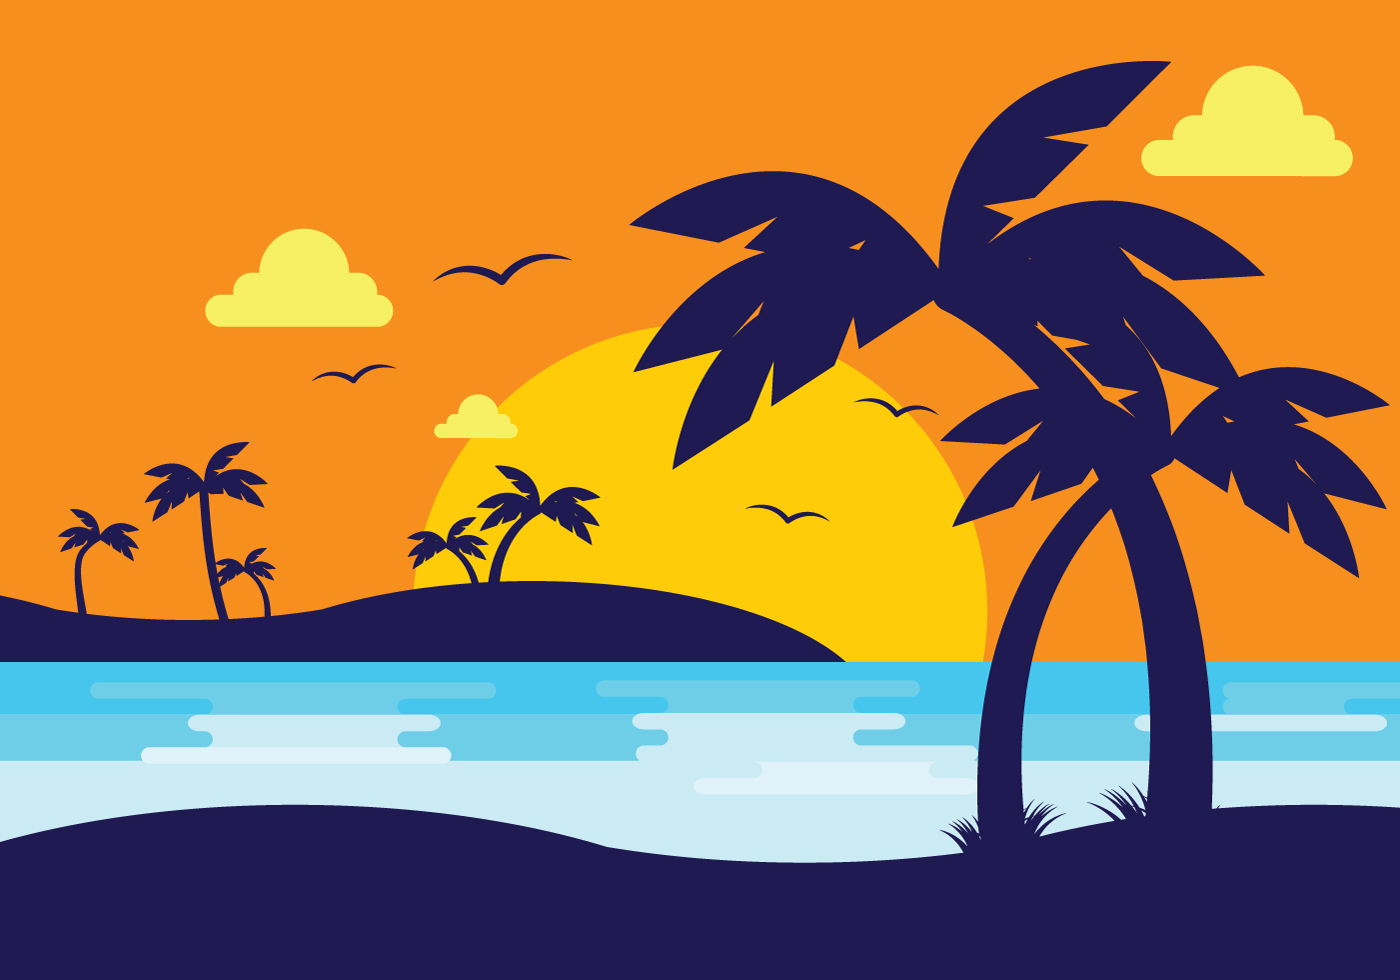 Sunset Beach With Palm Silhouette - Download Free Vector ...